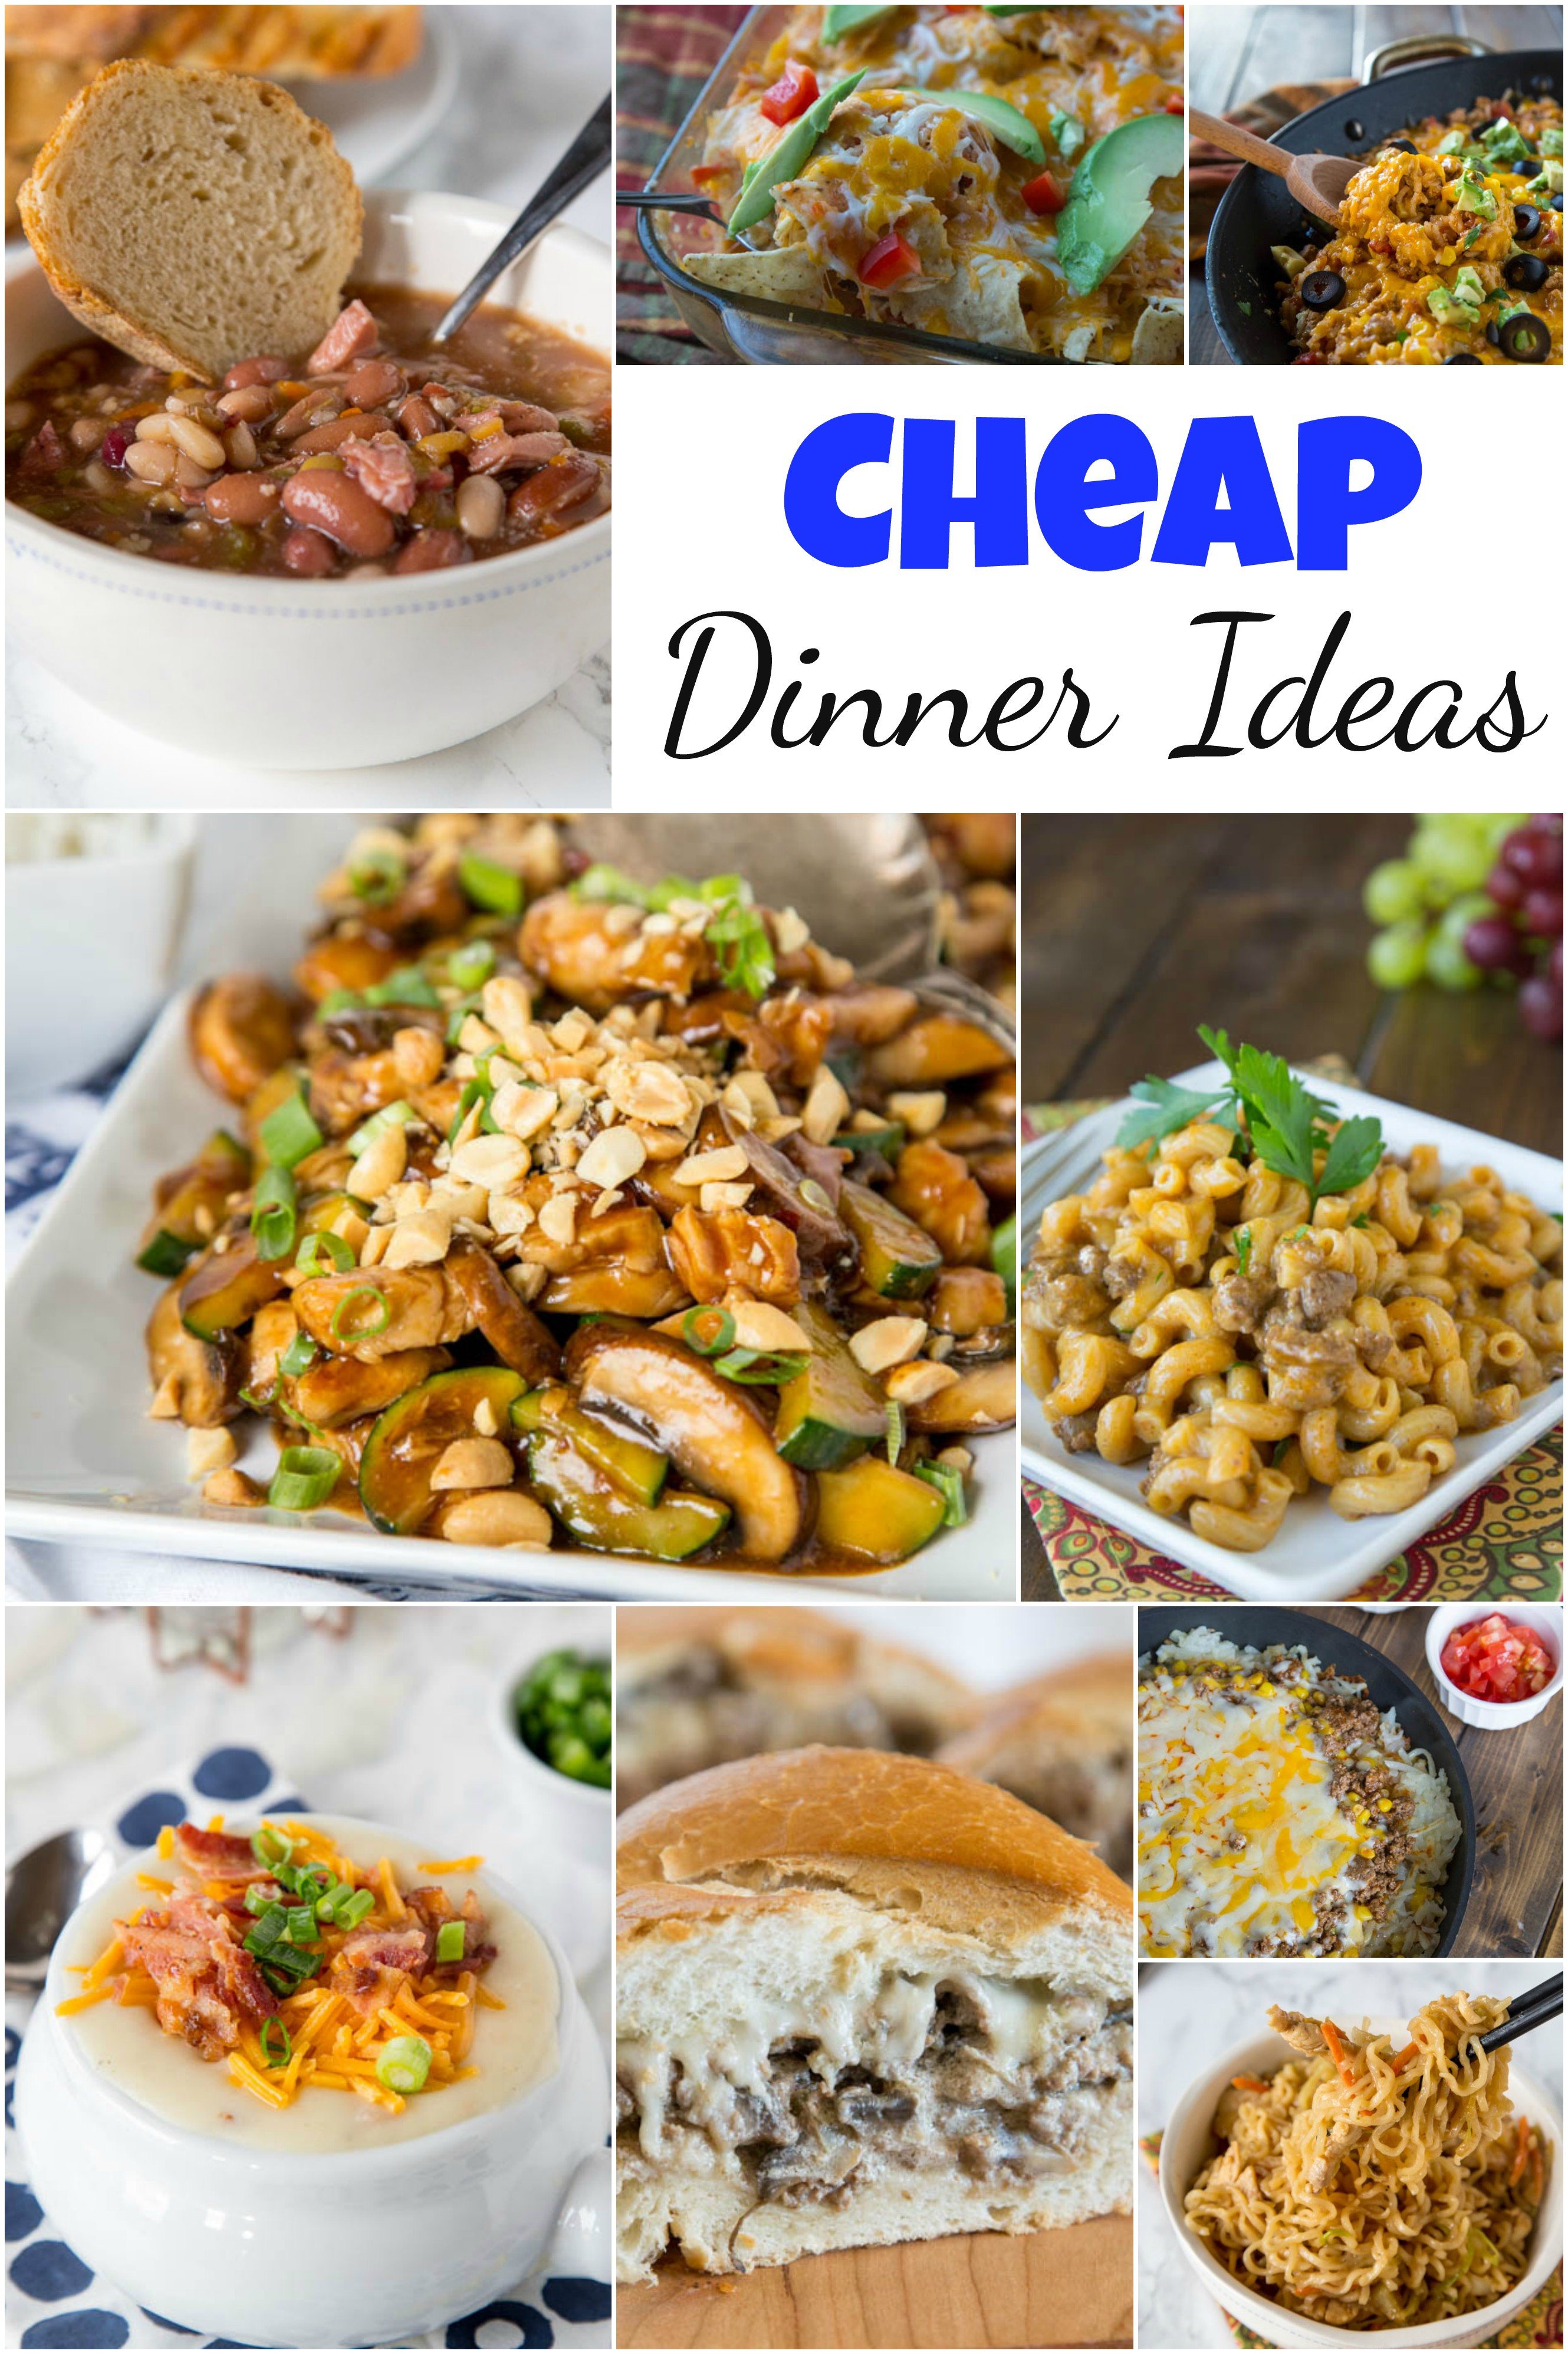 Easy Ideas For Dinner  Cheap Dinner Ideas Dinners Dishes and Desserts